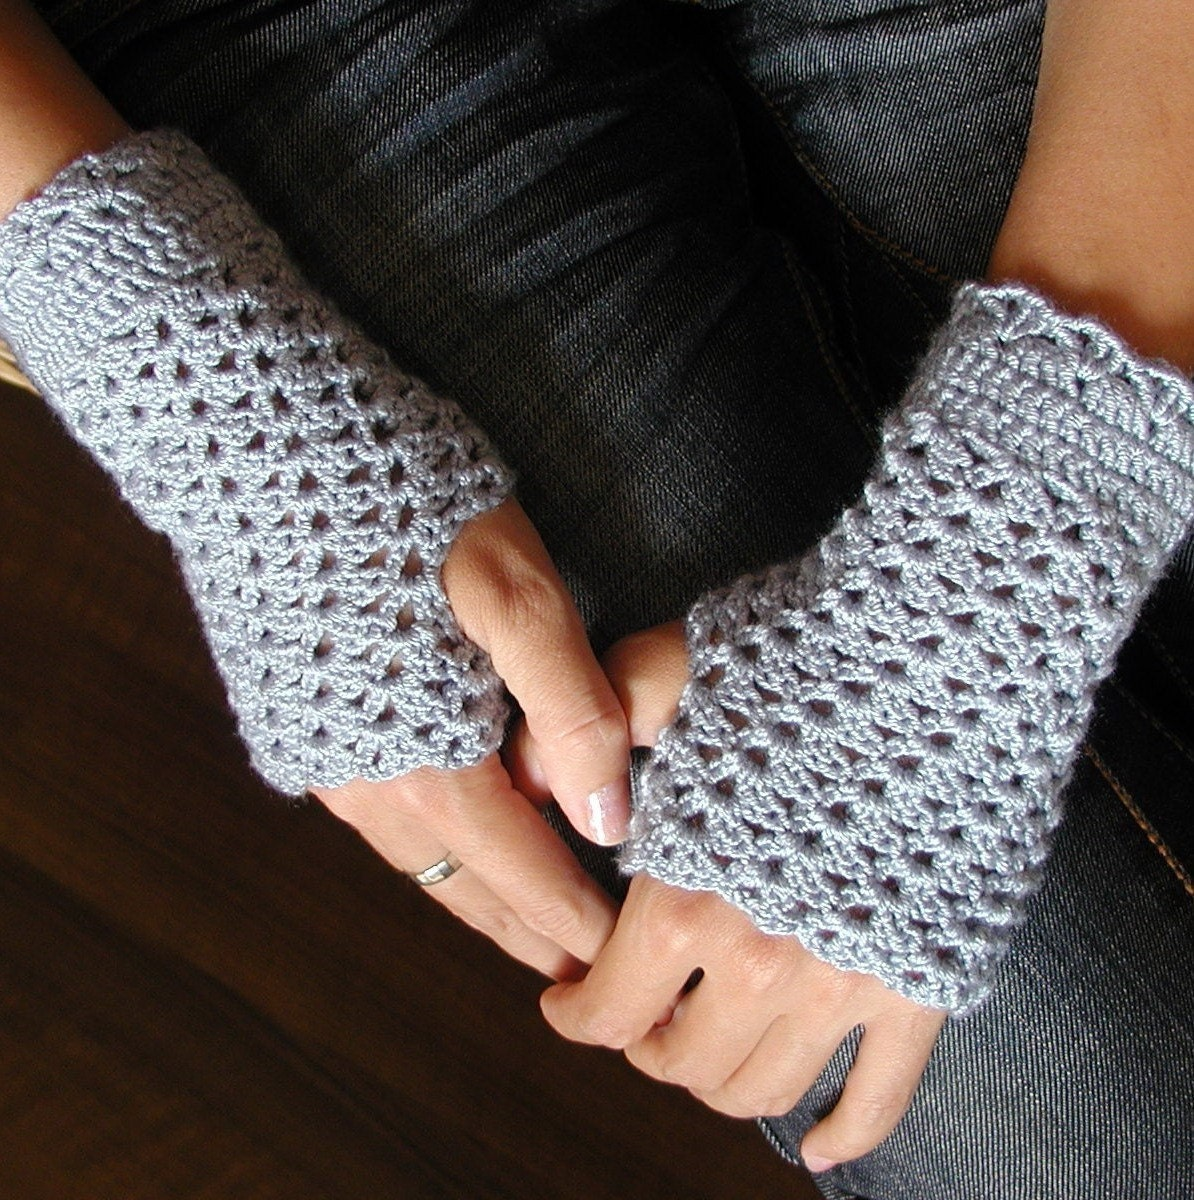 Crochet Mittens : Crocheted Fingerless Mittens PDF Crochet Pattern by FrougesArt